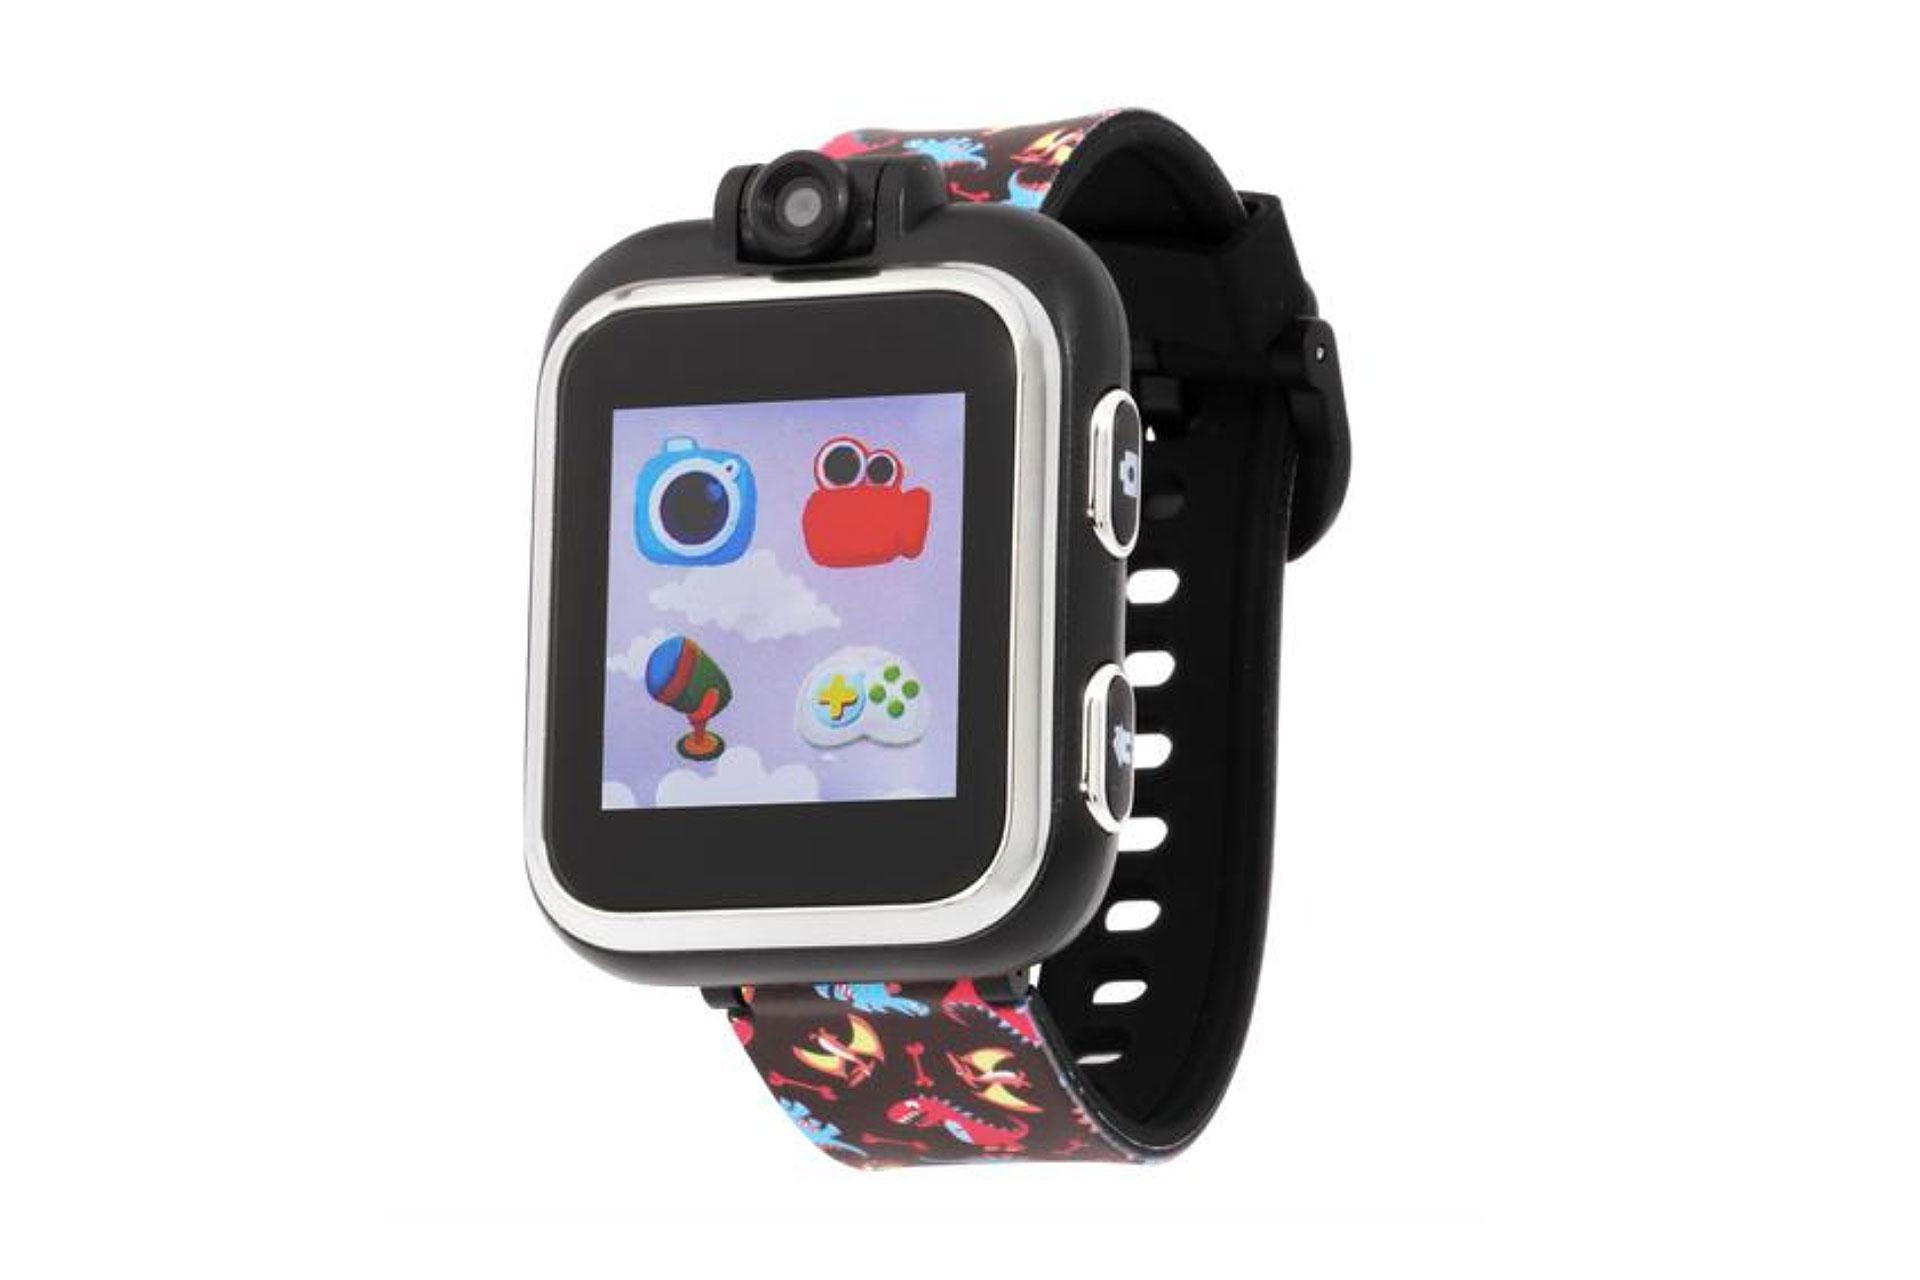 iTouch Air Smart Watch; Courtesy of Amazon